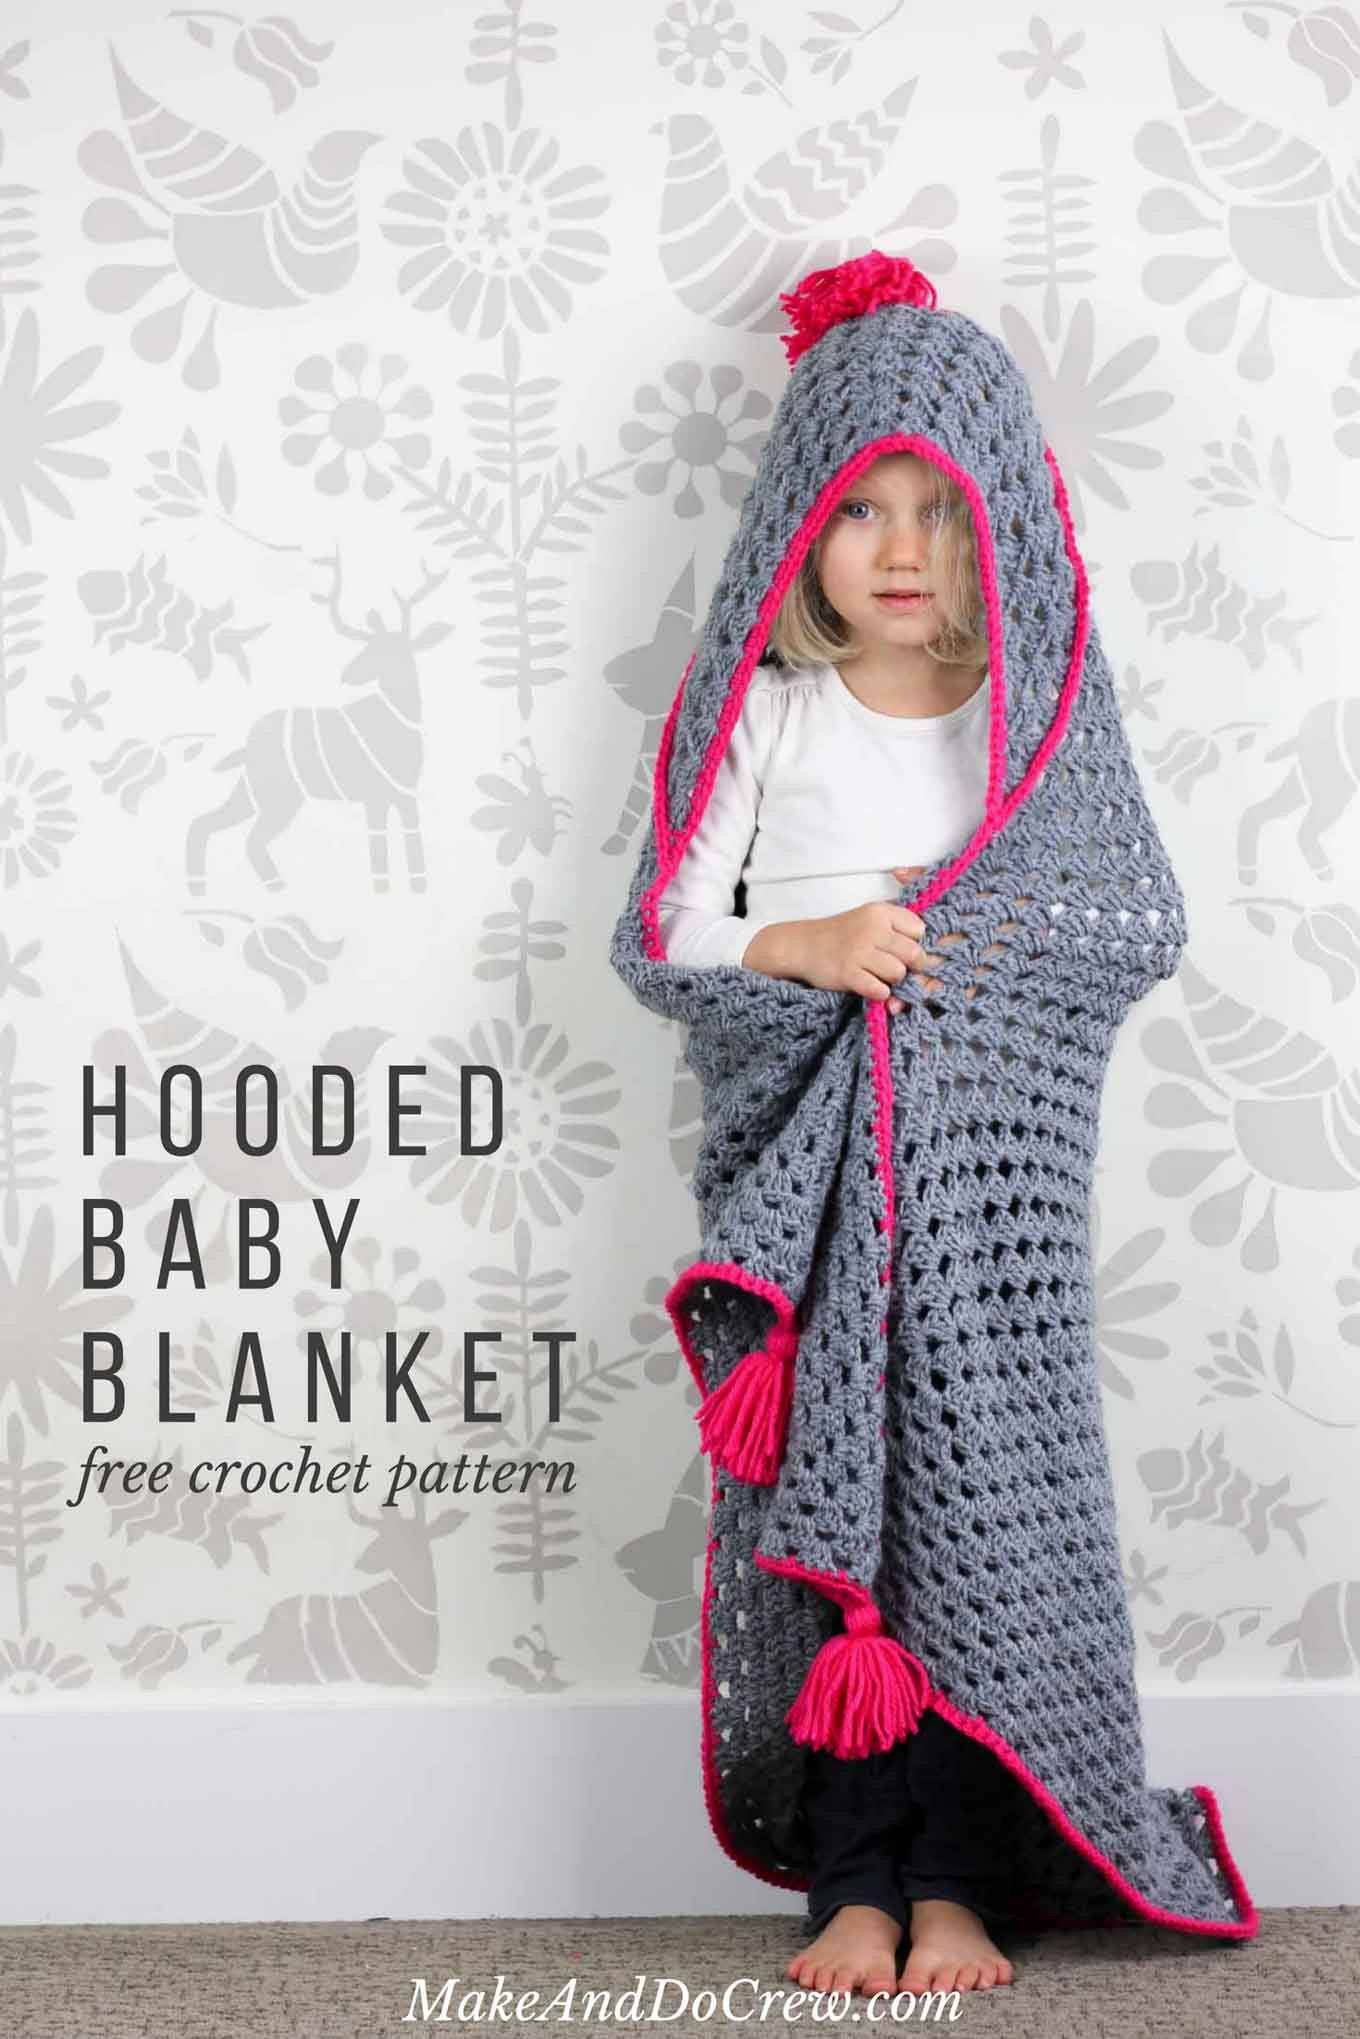 Hooded Baby Blanket Elegant Modern Crochet Hooded Baby Blanket Free Pattern for Charity Of Hooded Baby Blanket New Crocheted Hooded Baby Blanket Ideas 7 Nationtrendz